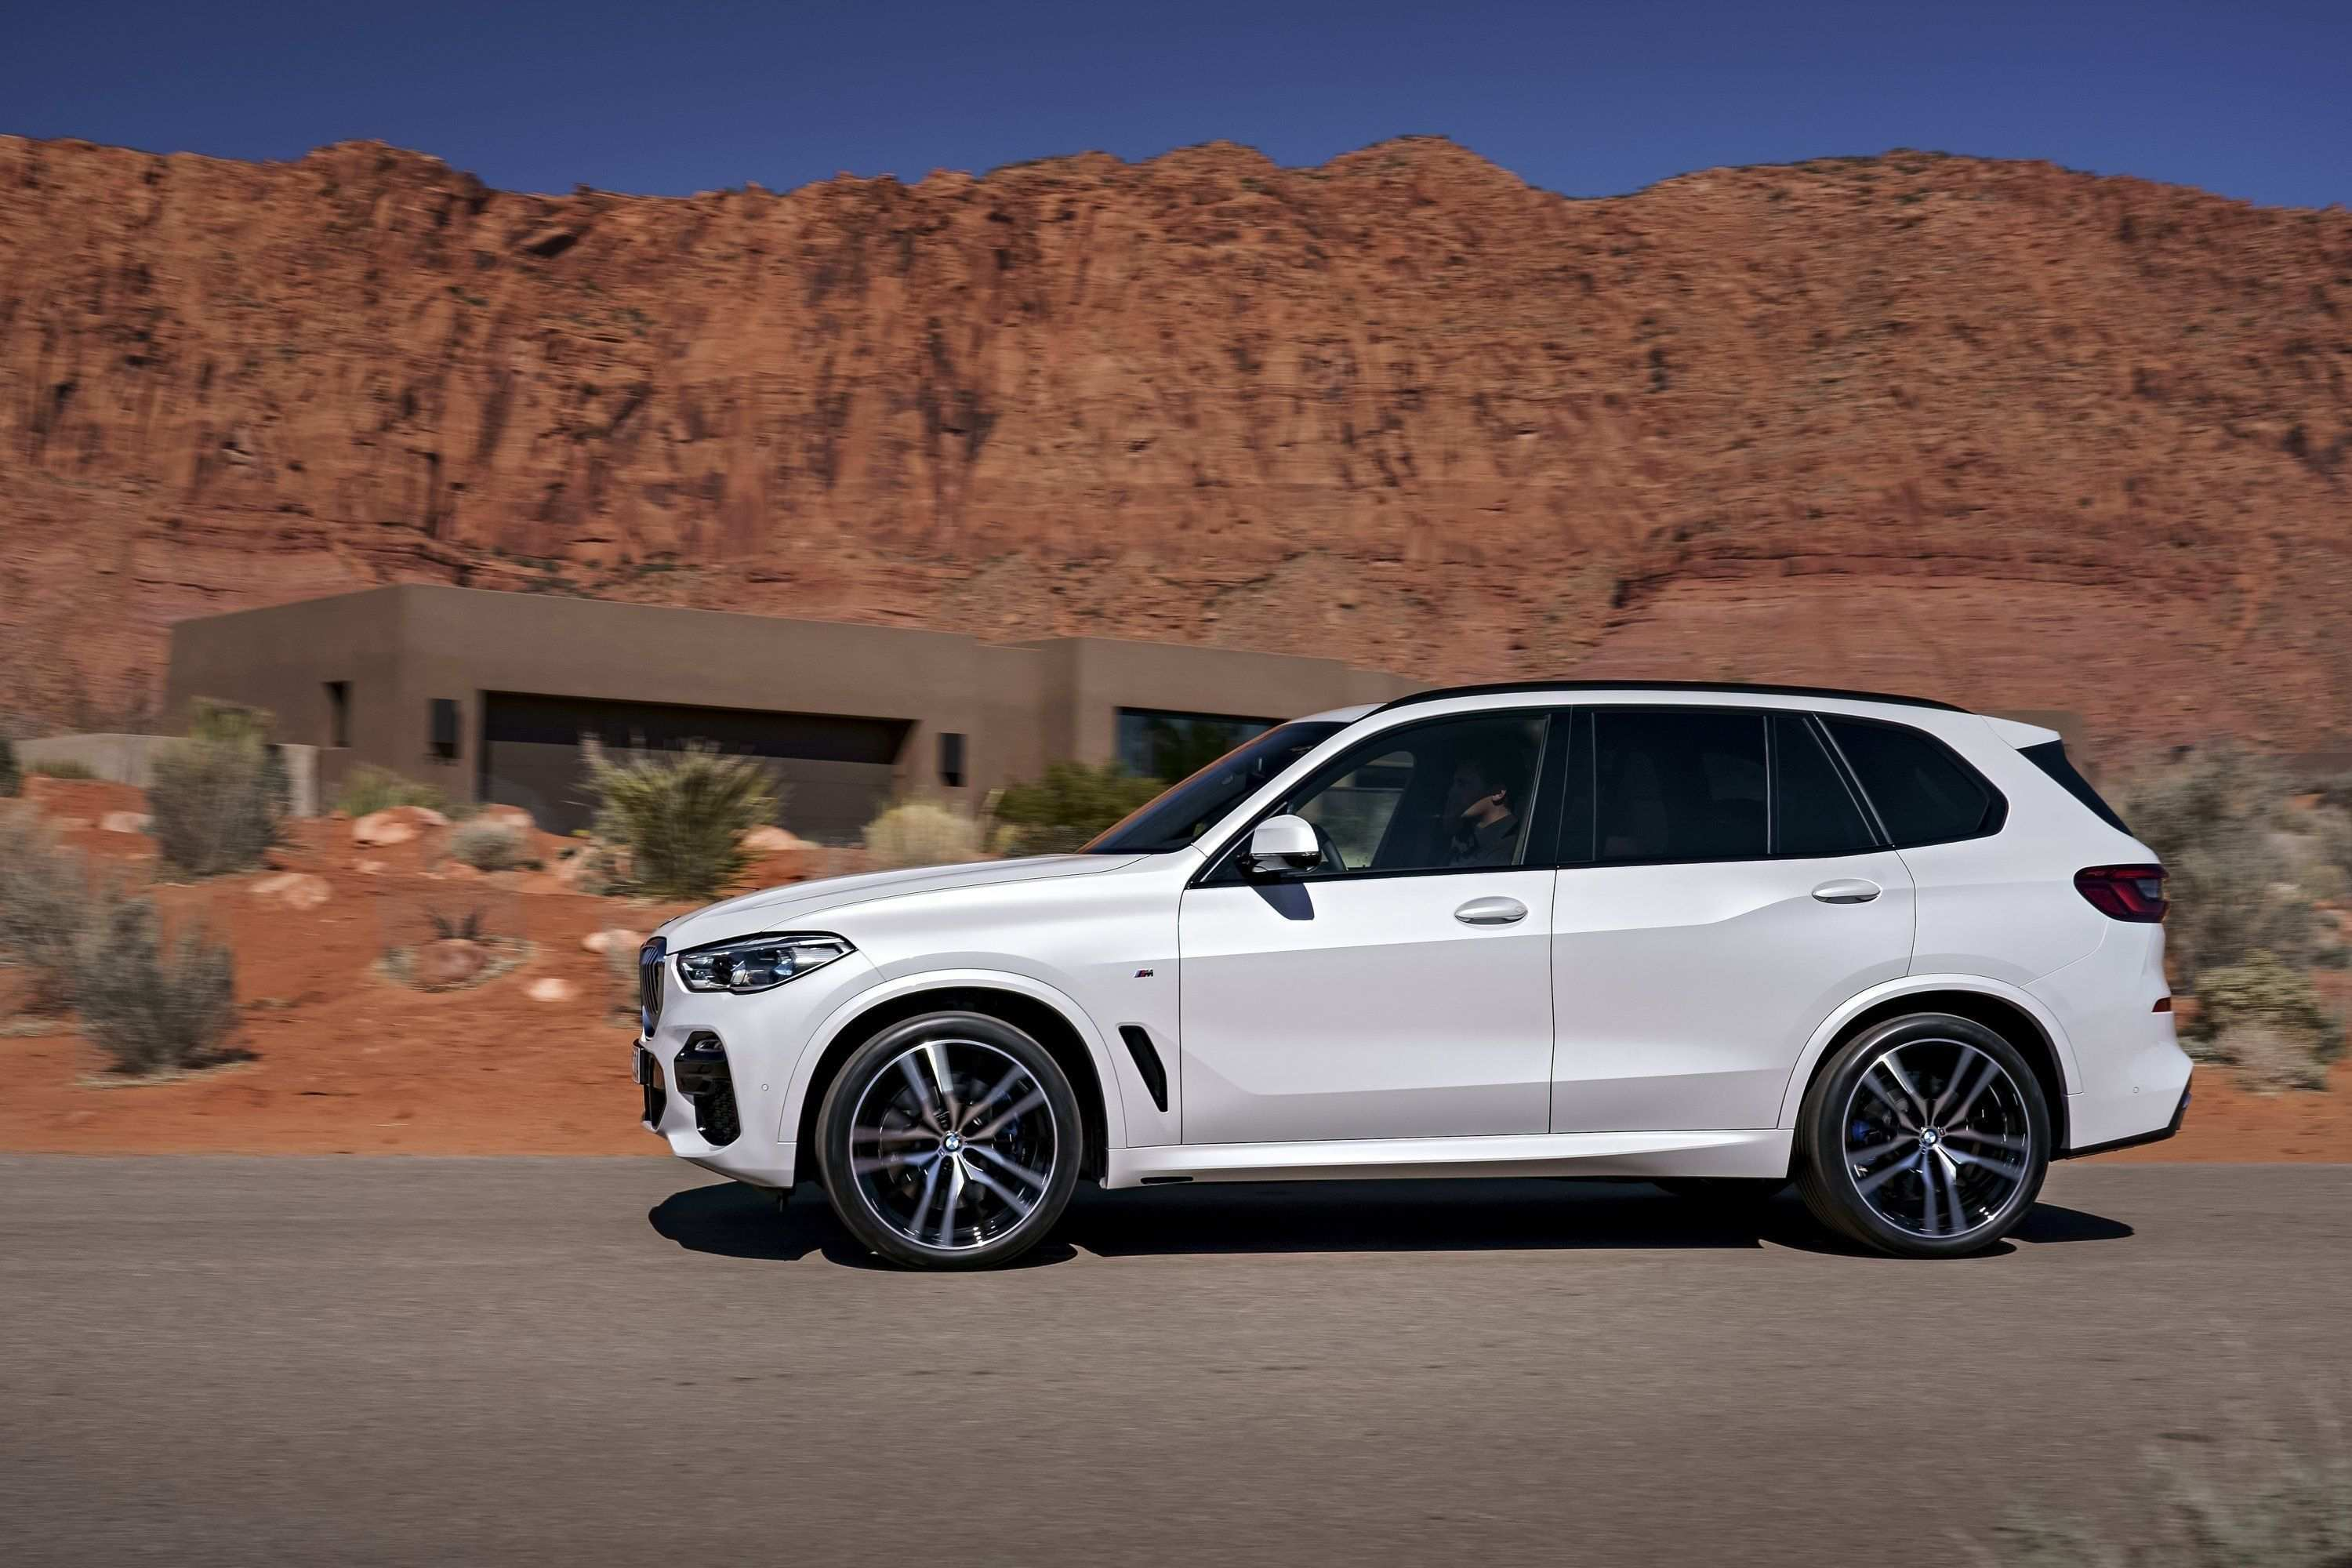 85 Great 2019 Bmw Truck Pictures Style with 2019 Bmw Truck Pictures